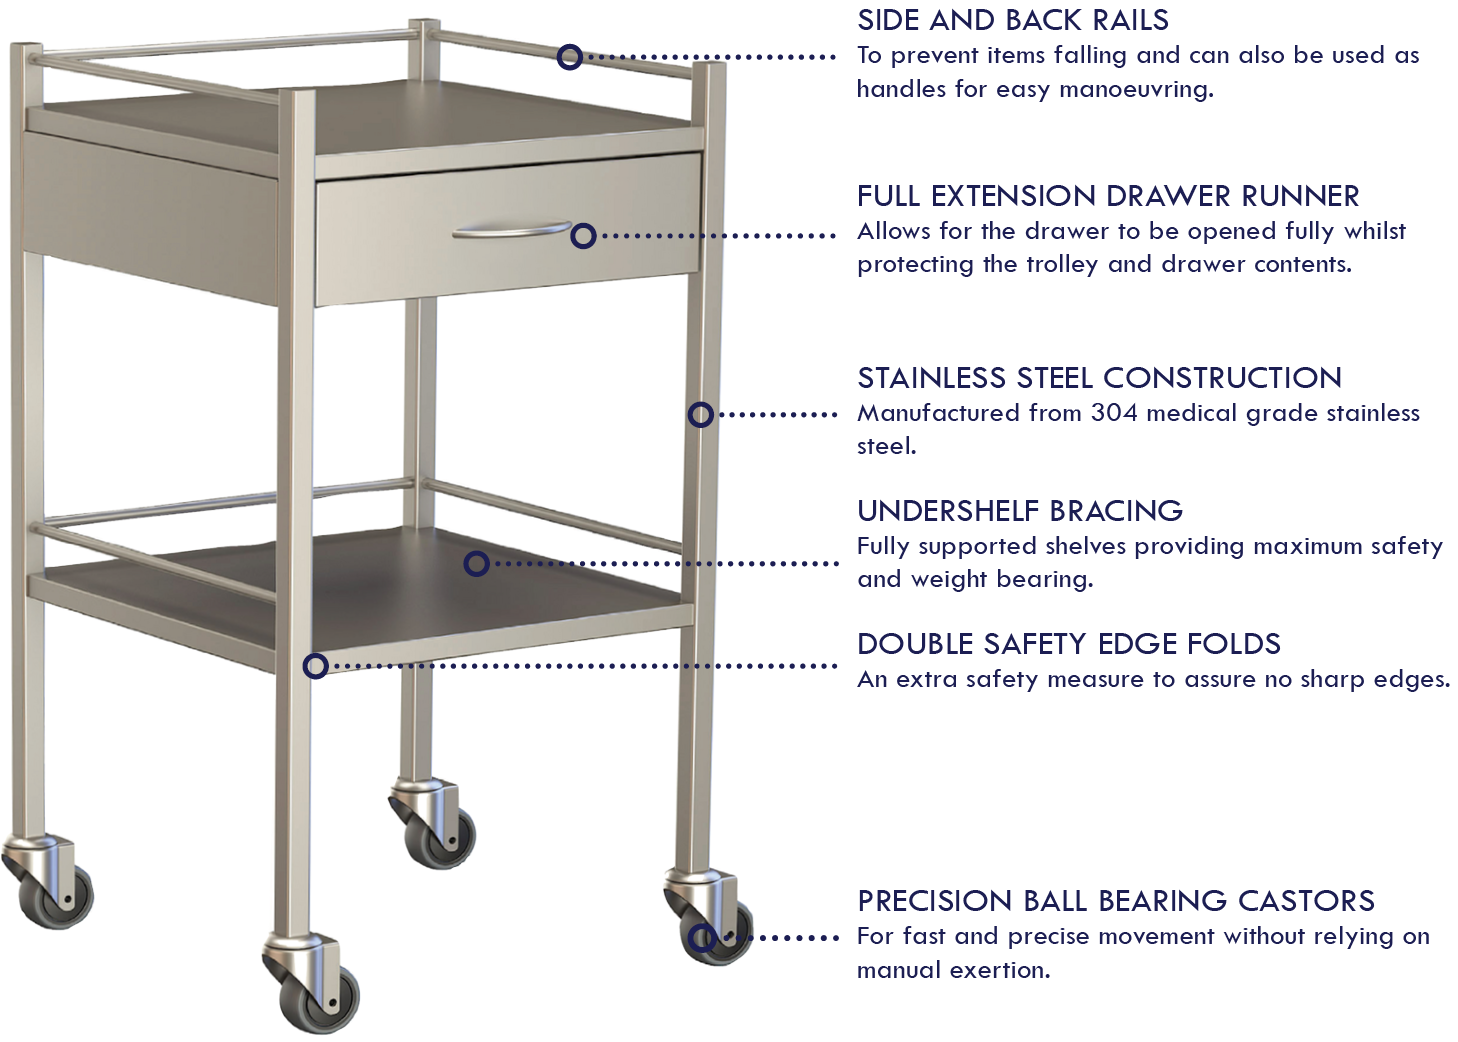 Signature Clinical Furniture Stainless Steel Trolley Features